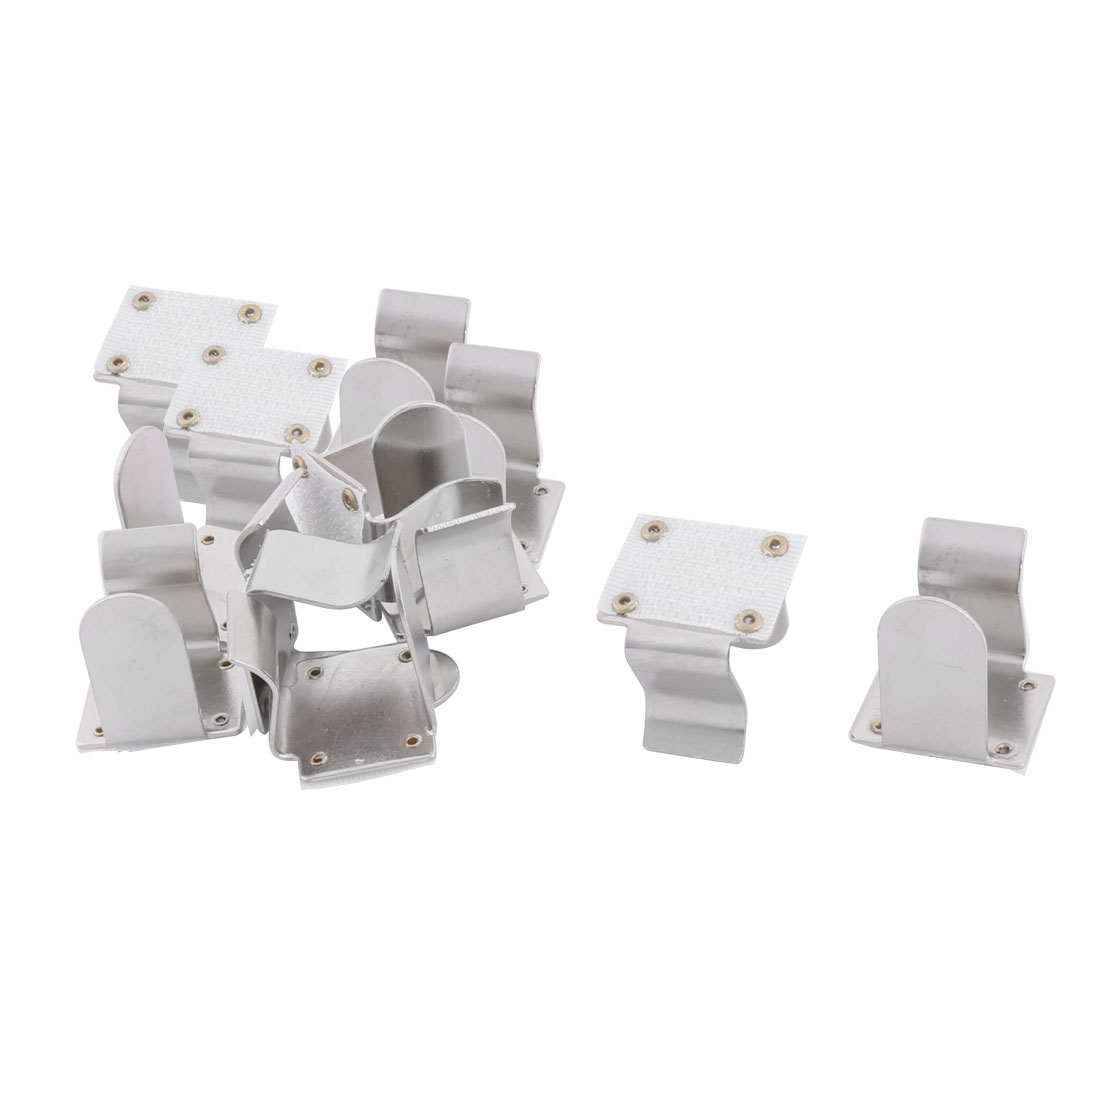 Family Hotel Metal Tablecloth Table Cover Clamp Clip Holder Silver Tone 12pcs